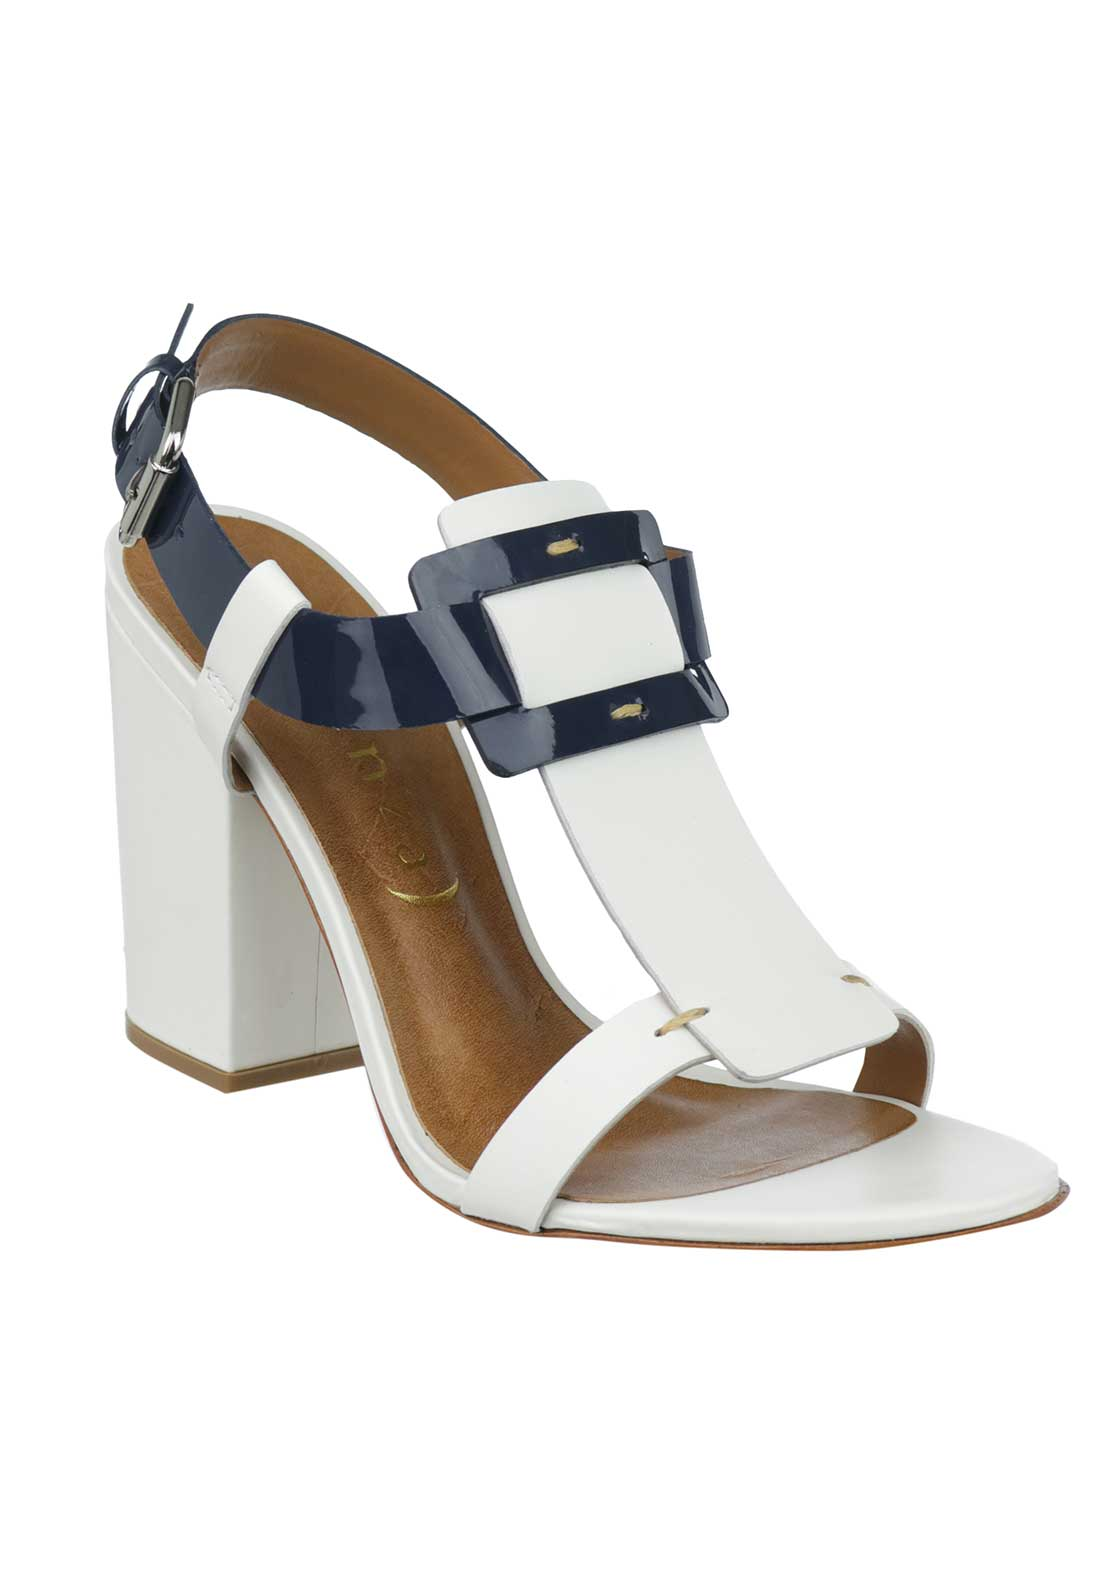 Unique Footwear Leather Patent Block Heeled Sandals, White and Navy